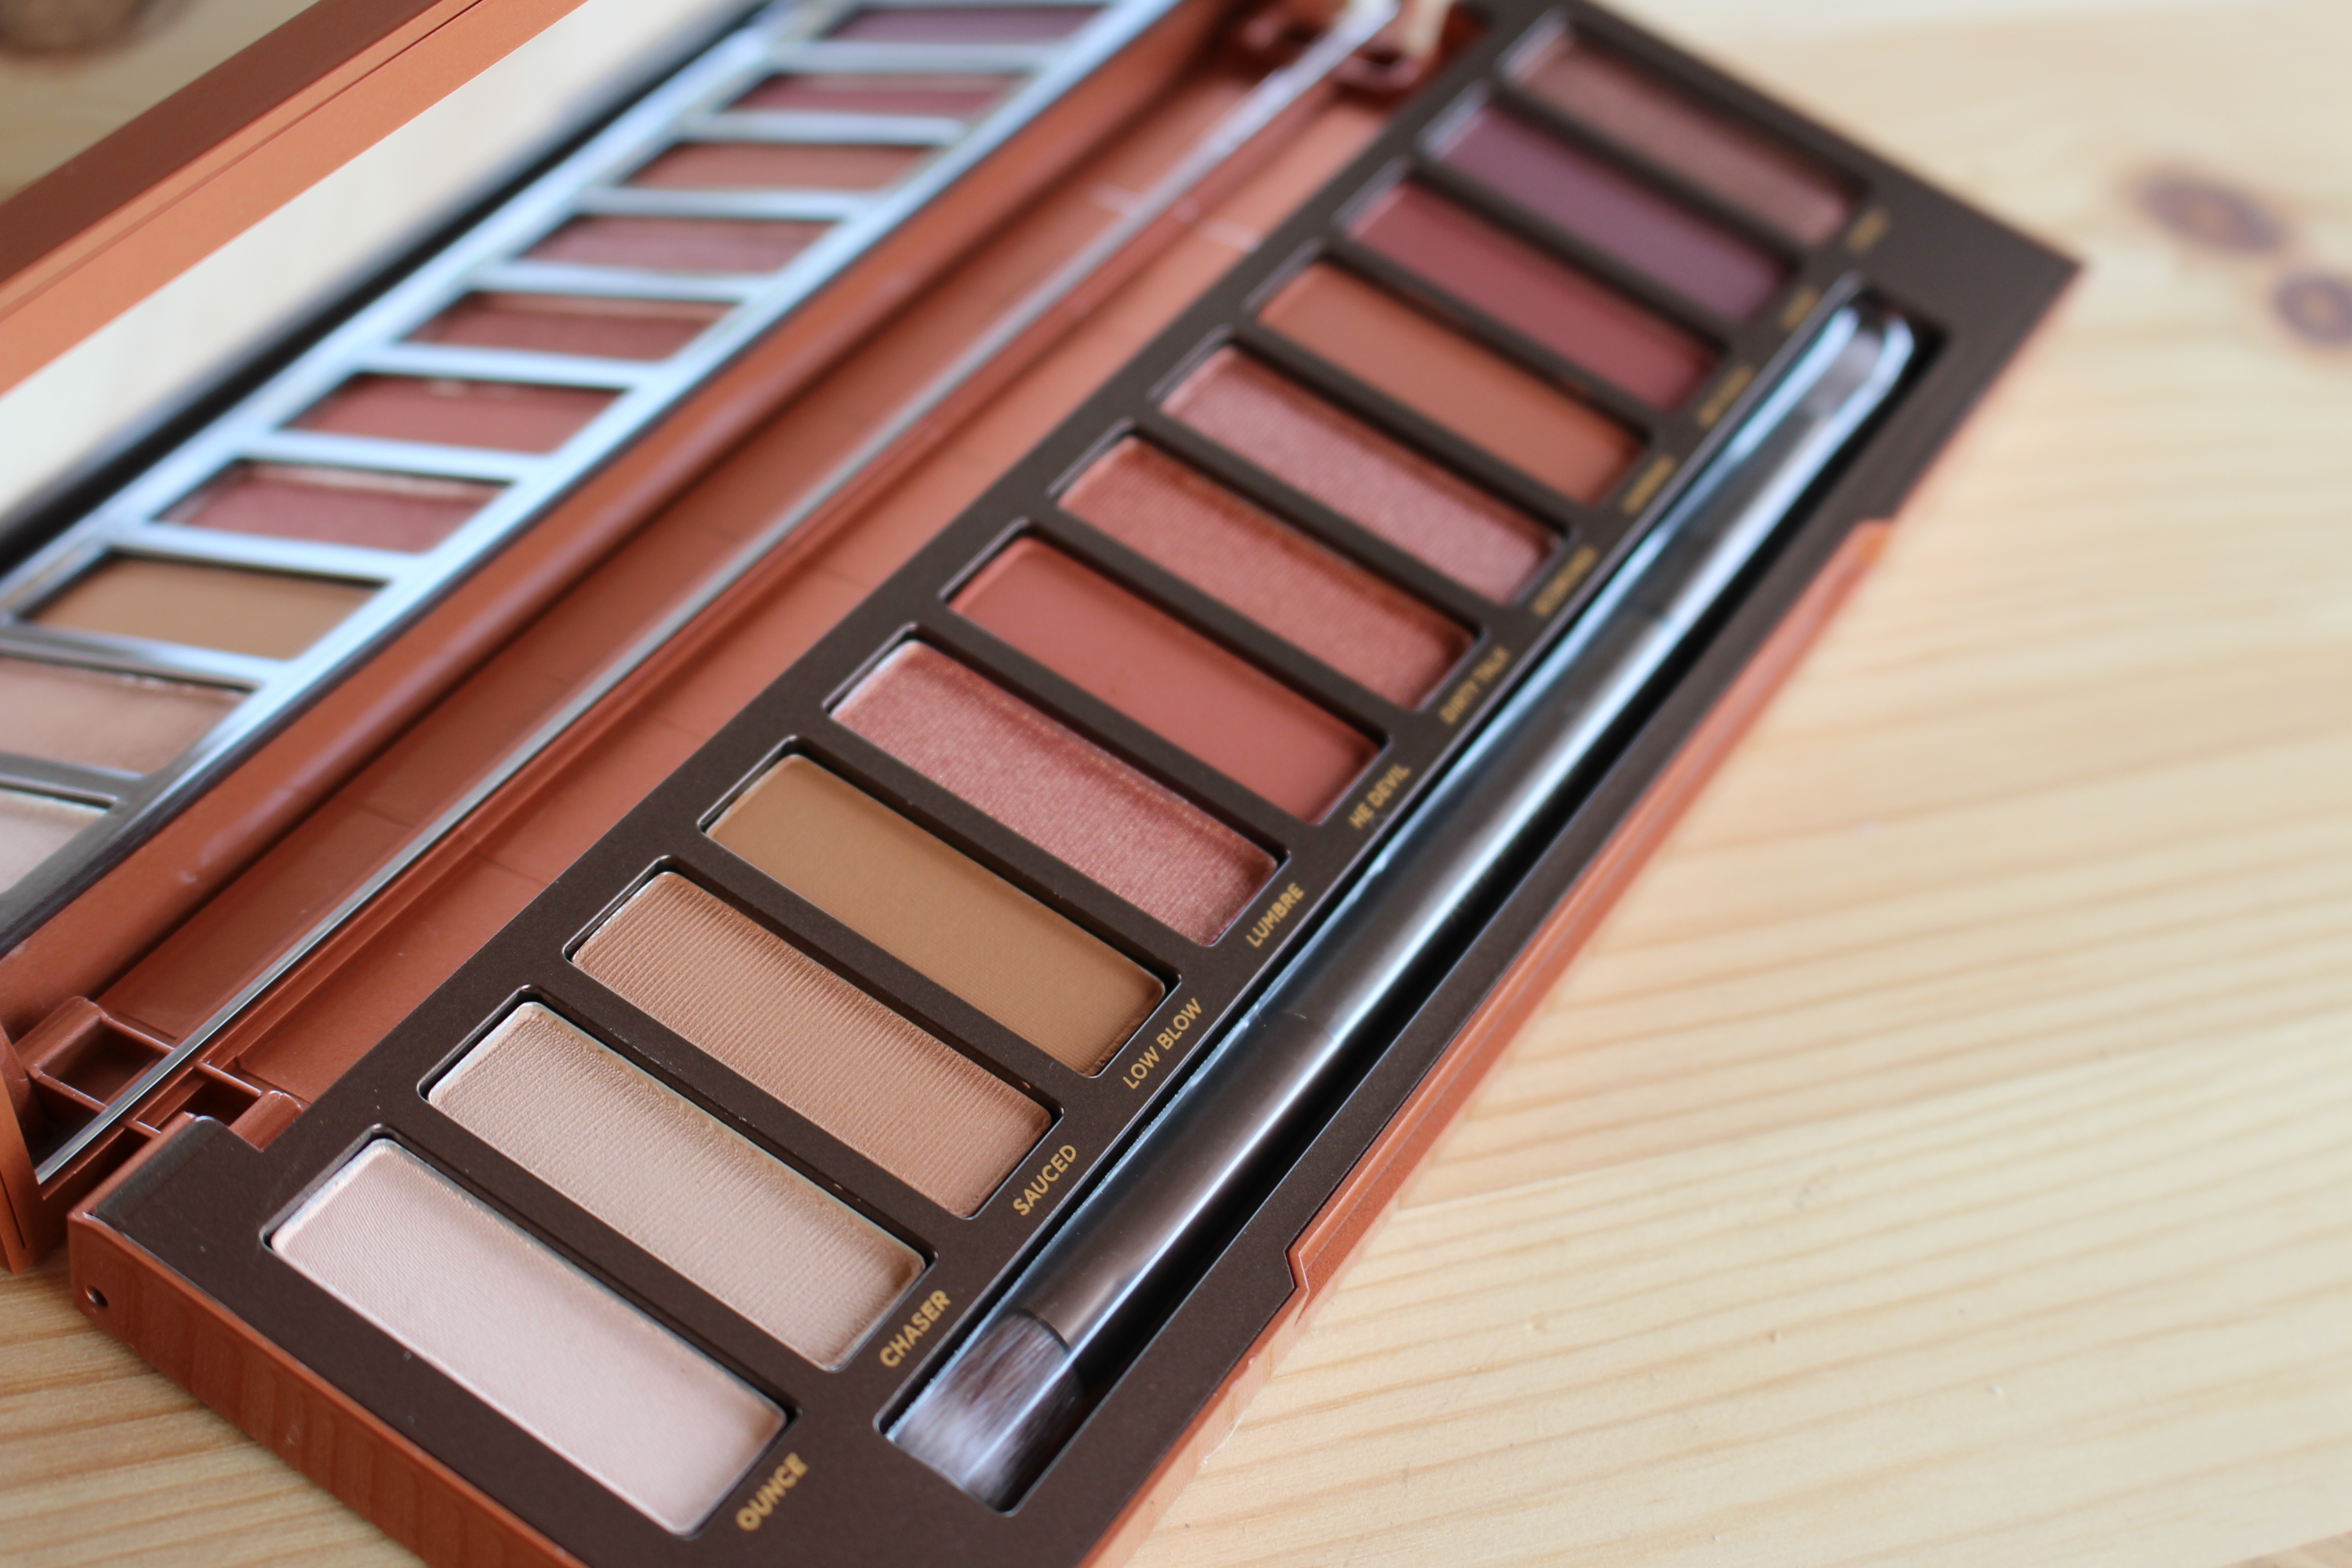 Urban decay naked petite heat palette review tutorial